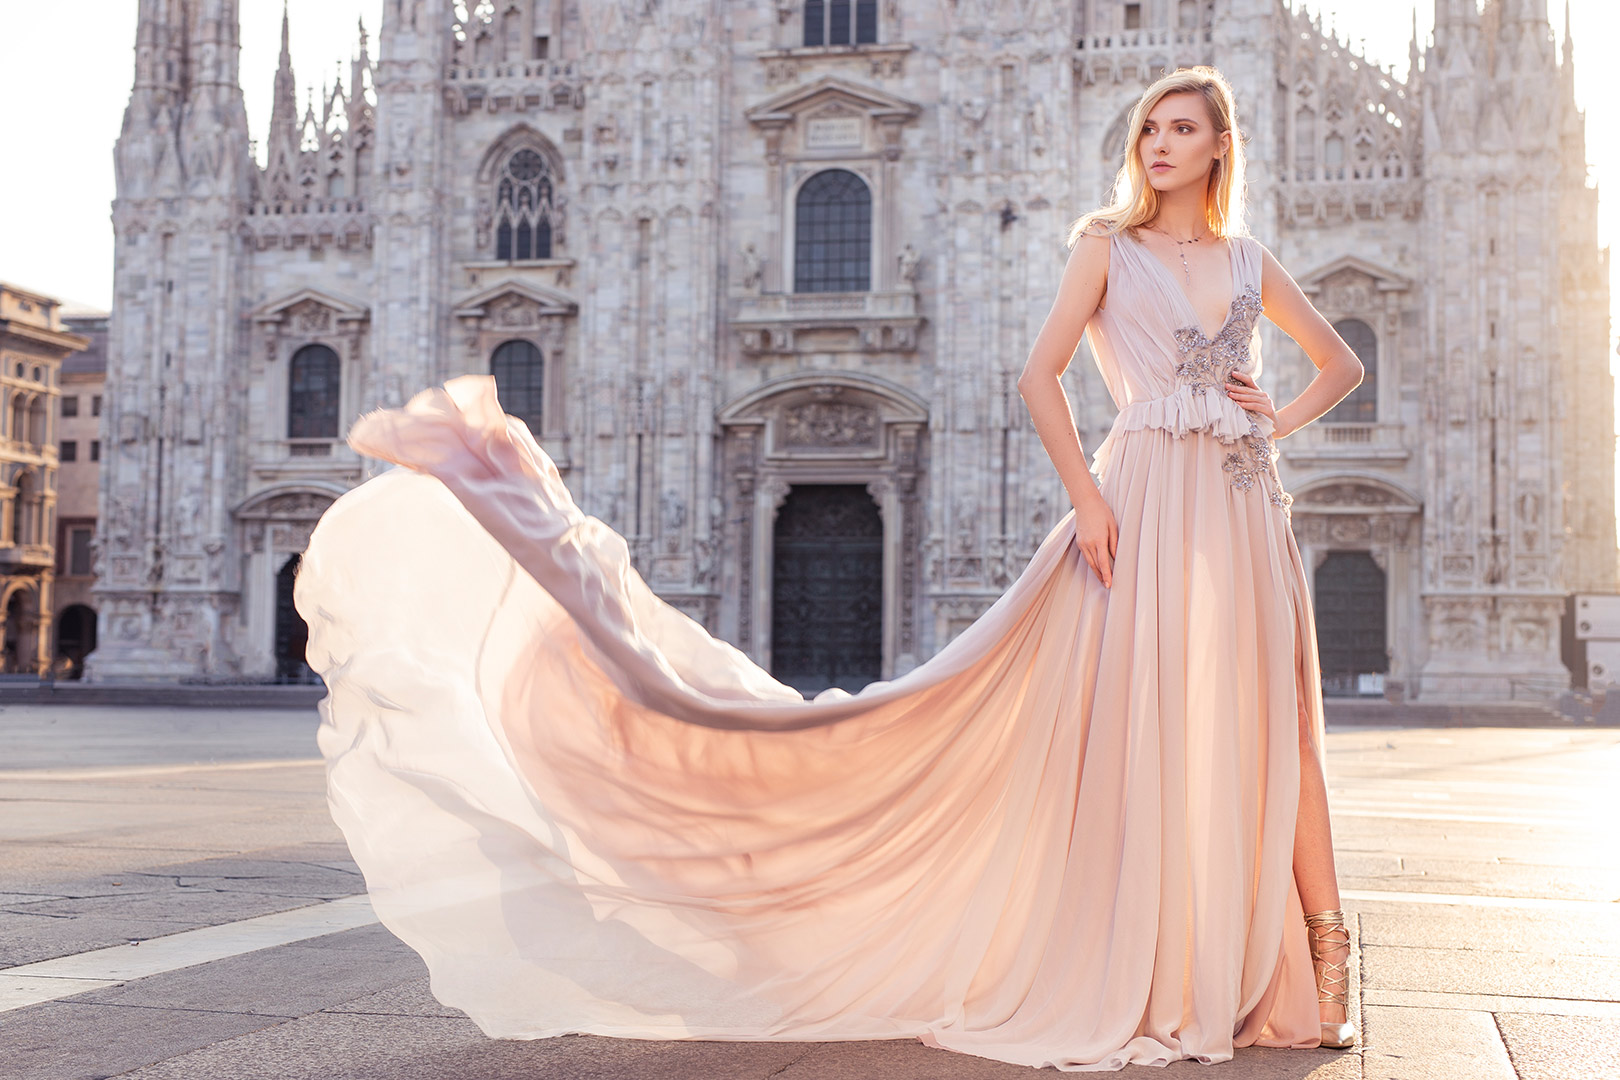 Dream portrait session experience in Milan Italy in elegant dress